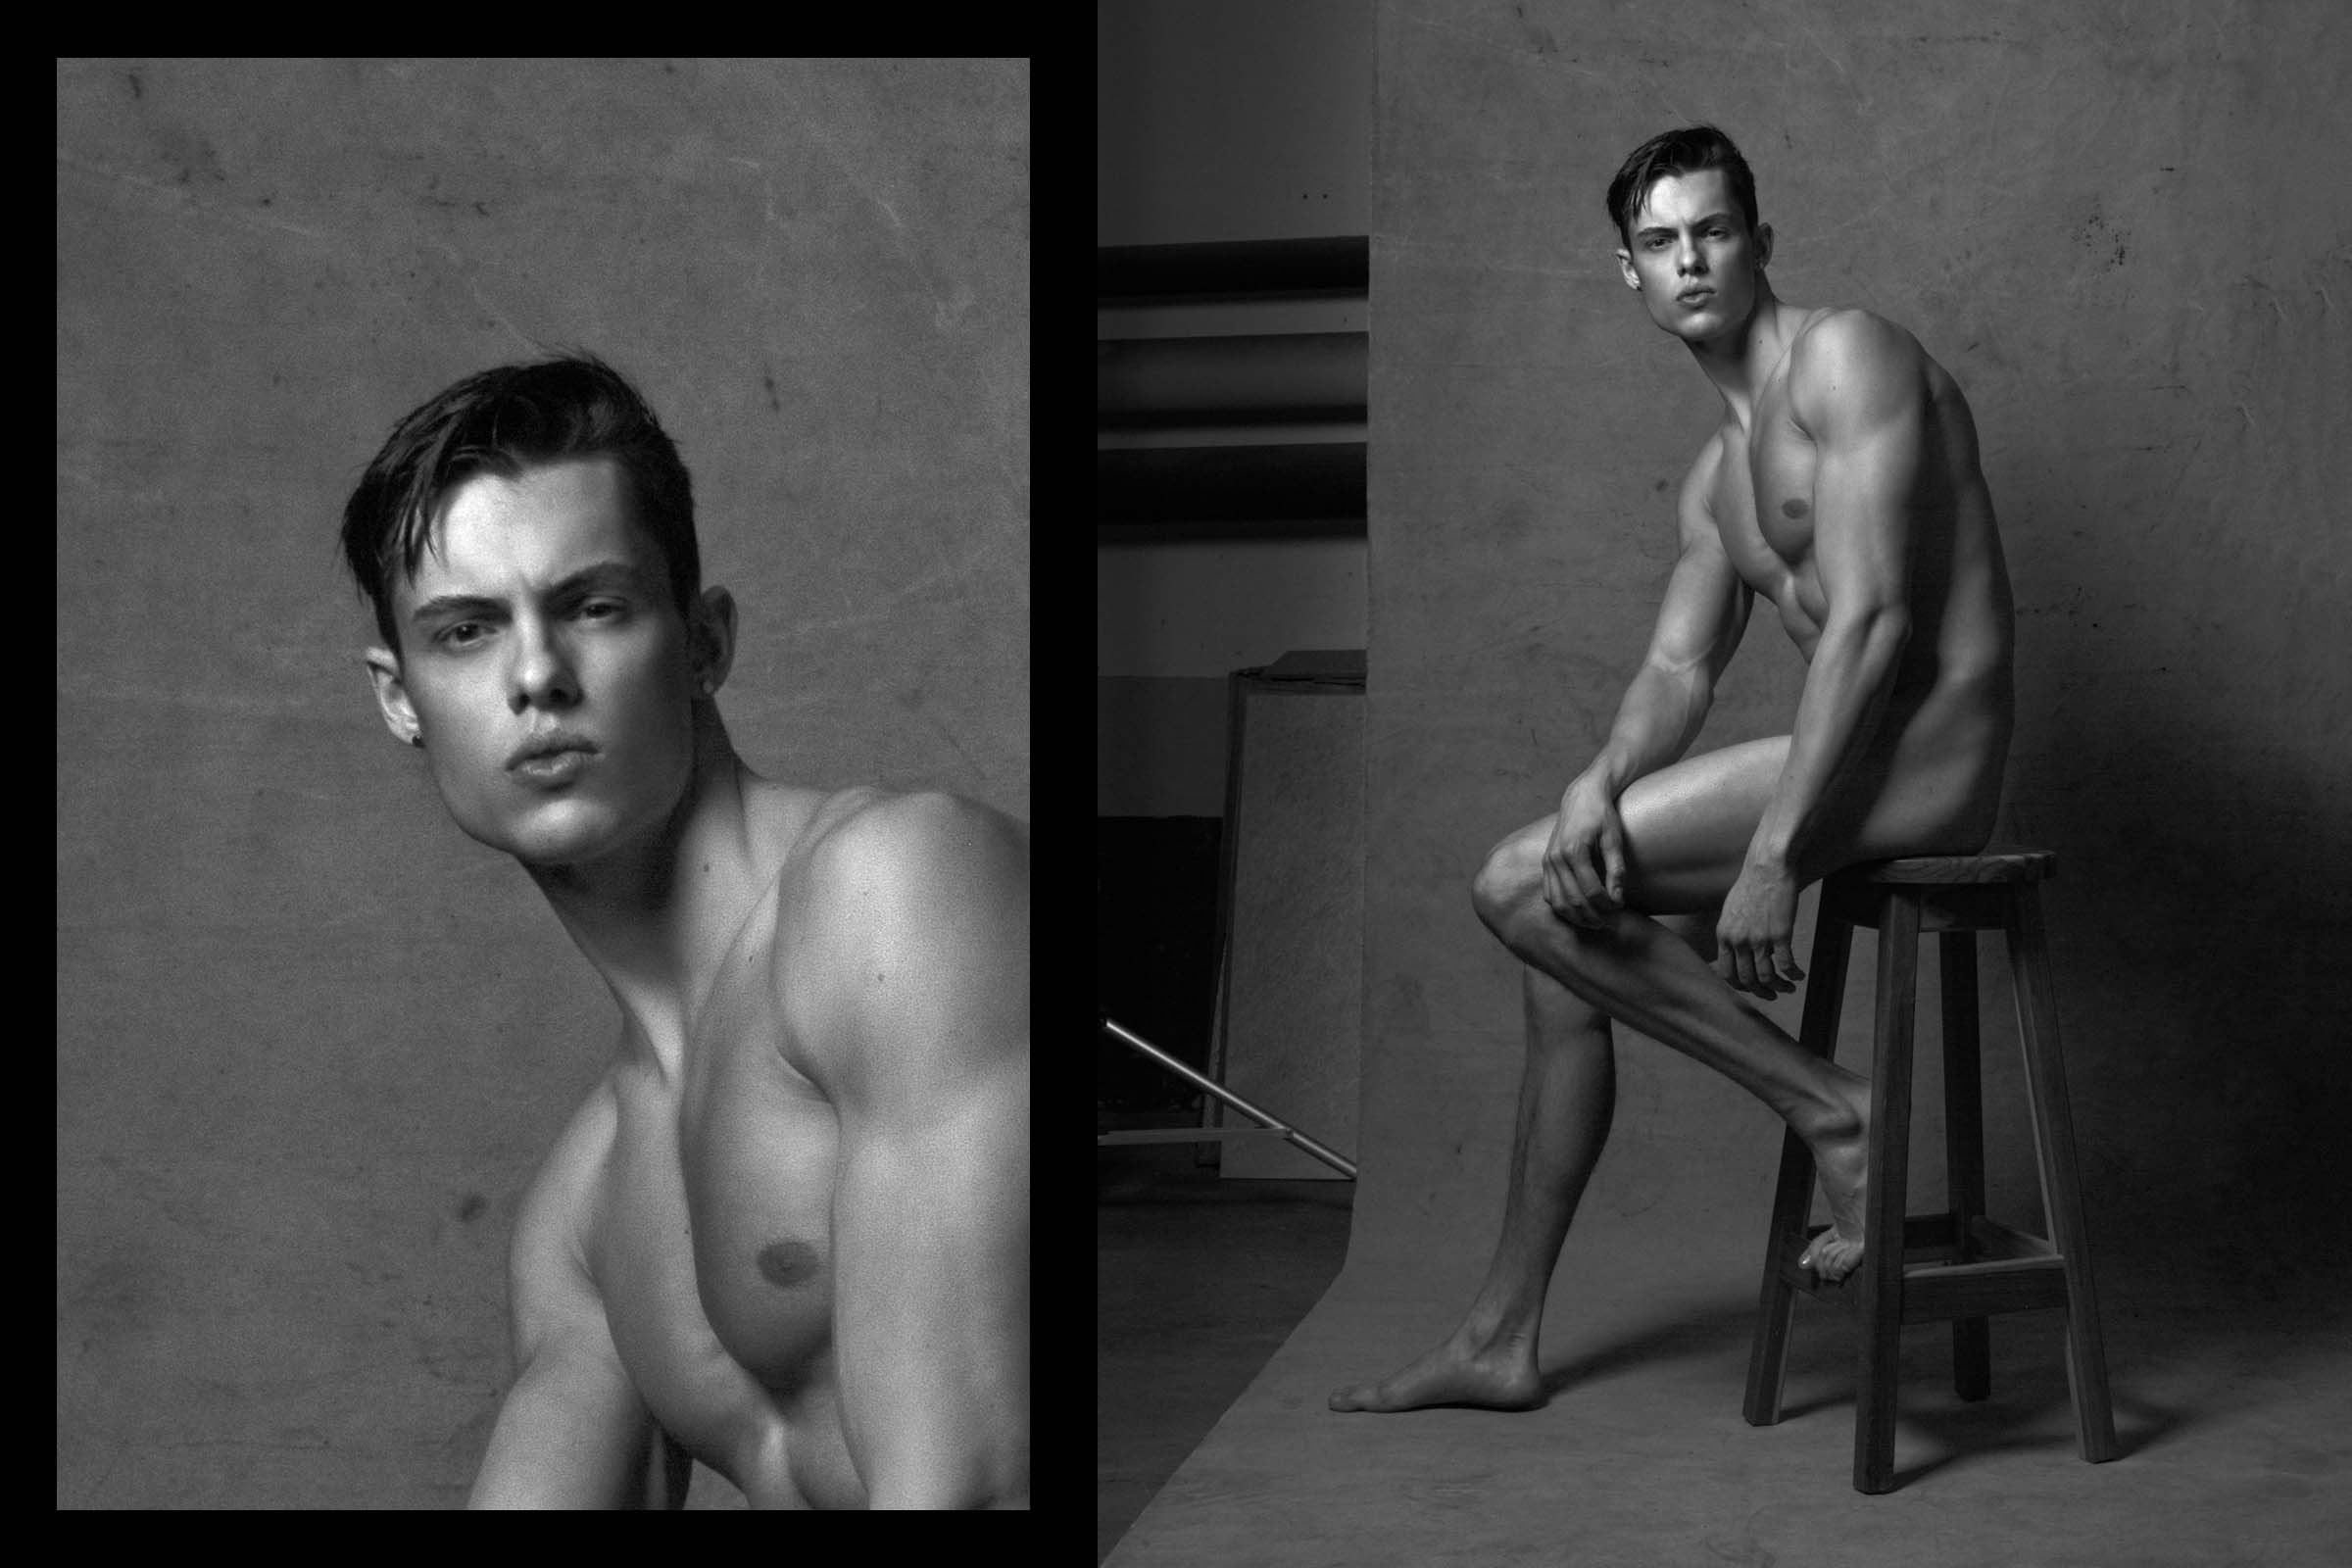 Augusto Moraes by Filipe Galgani for Brazilian Male Model